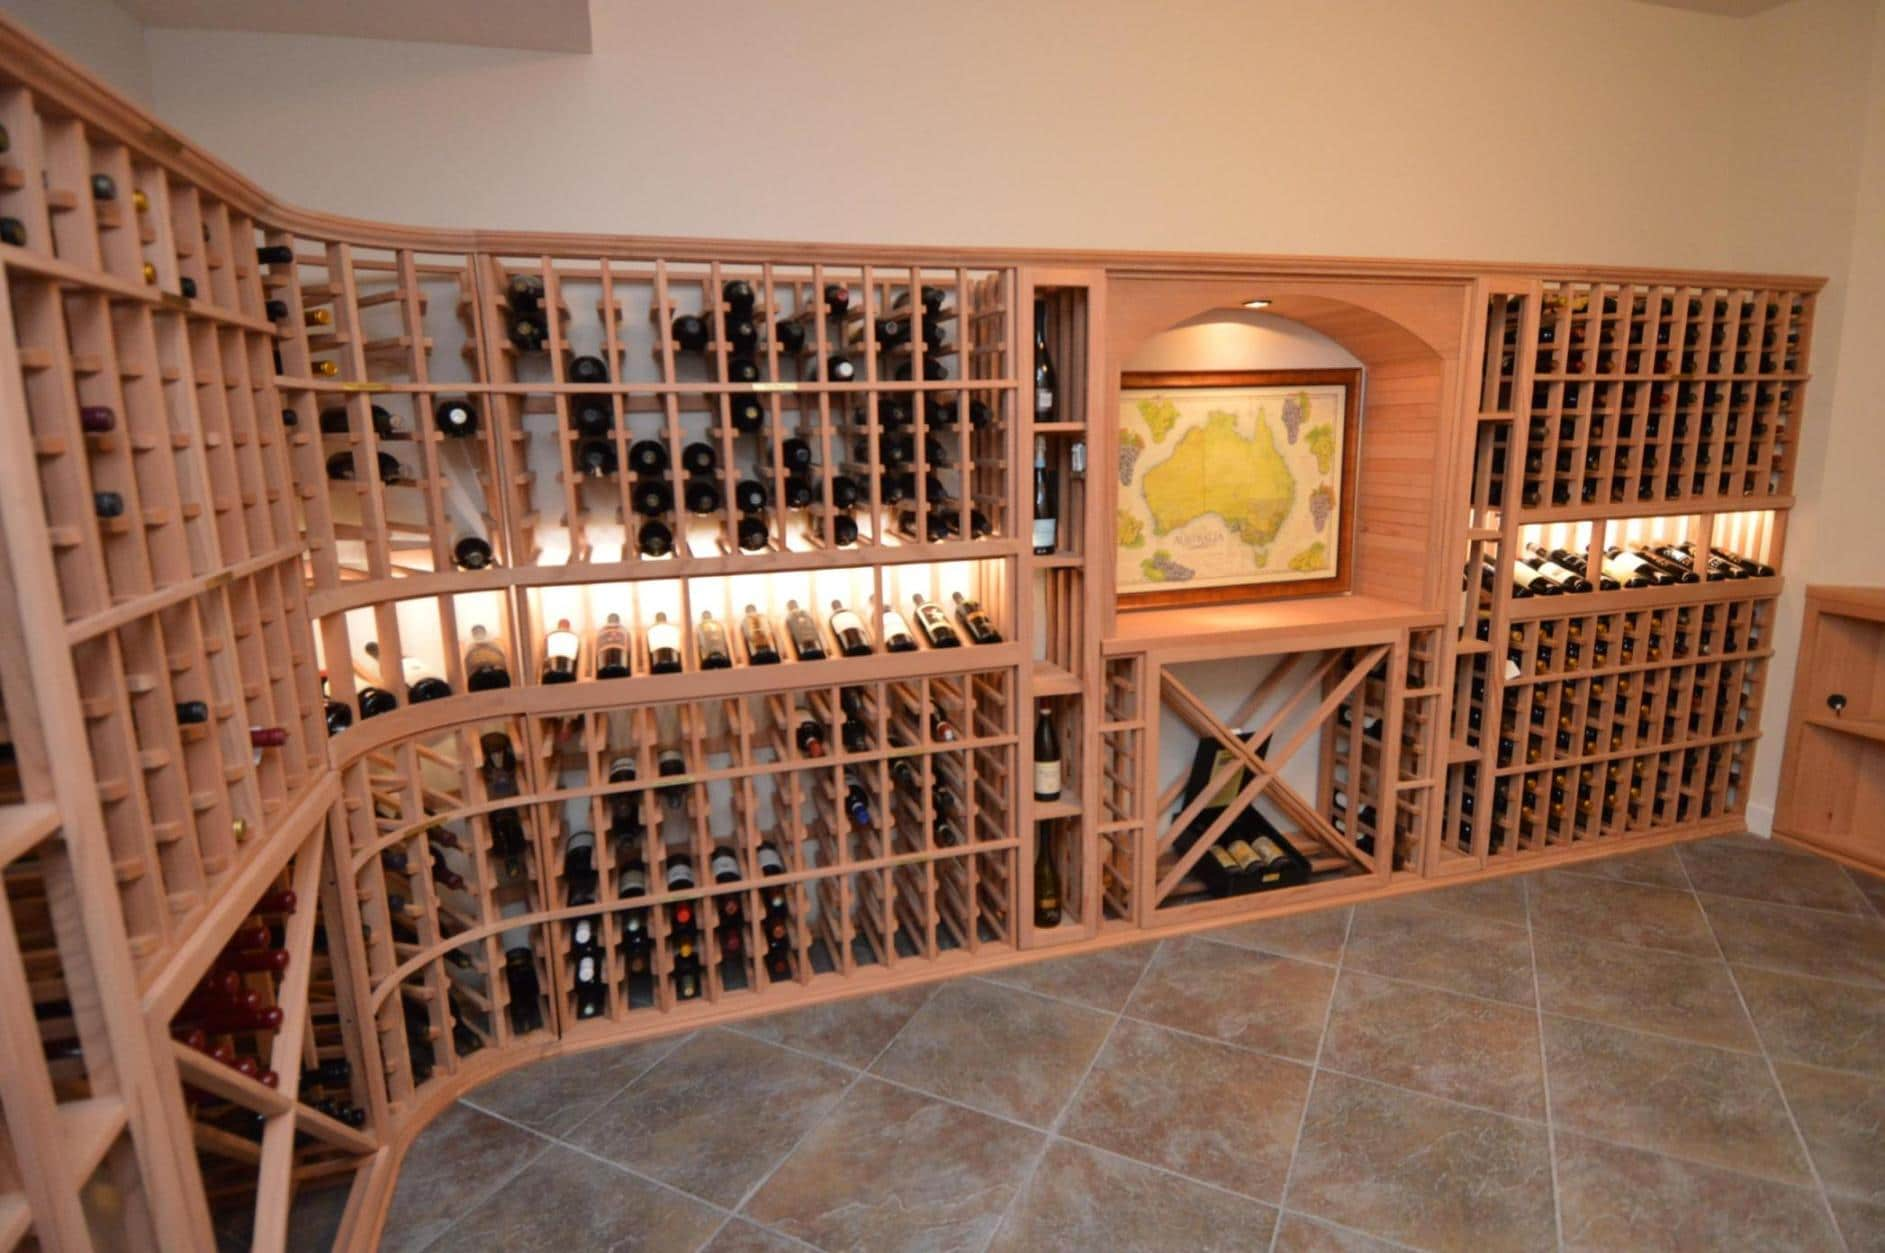 Functional Wine Racks for Los Angeles Residence